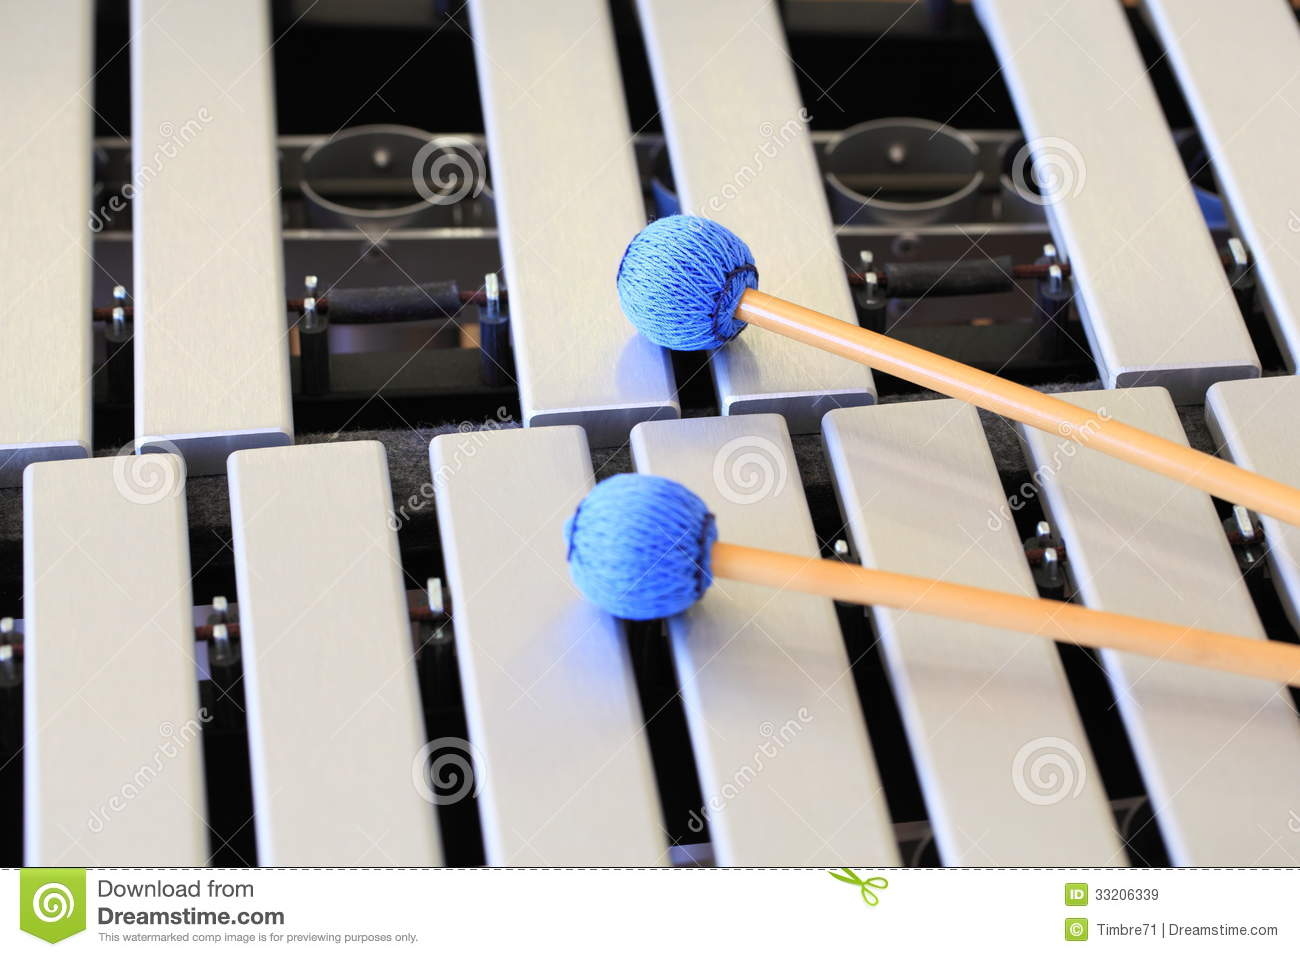 the concept of marimba mallets New concept of multitone mallets great versatility, heavier, powerful and with more projection of the sound this series increases your choose of sound, only depending on your control of attack.